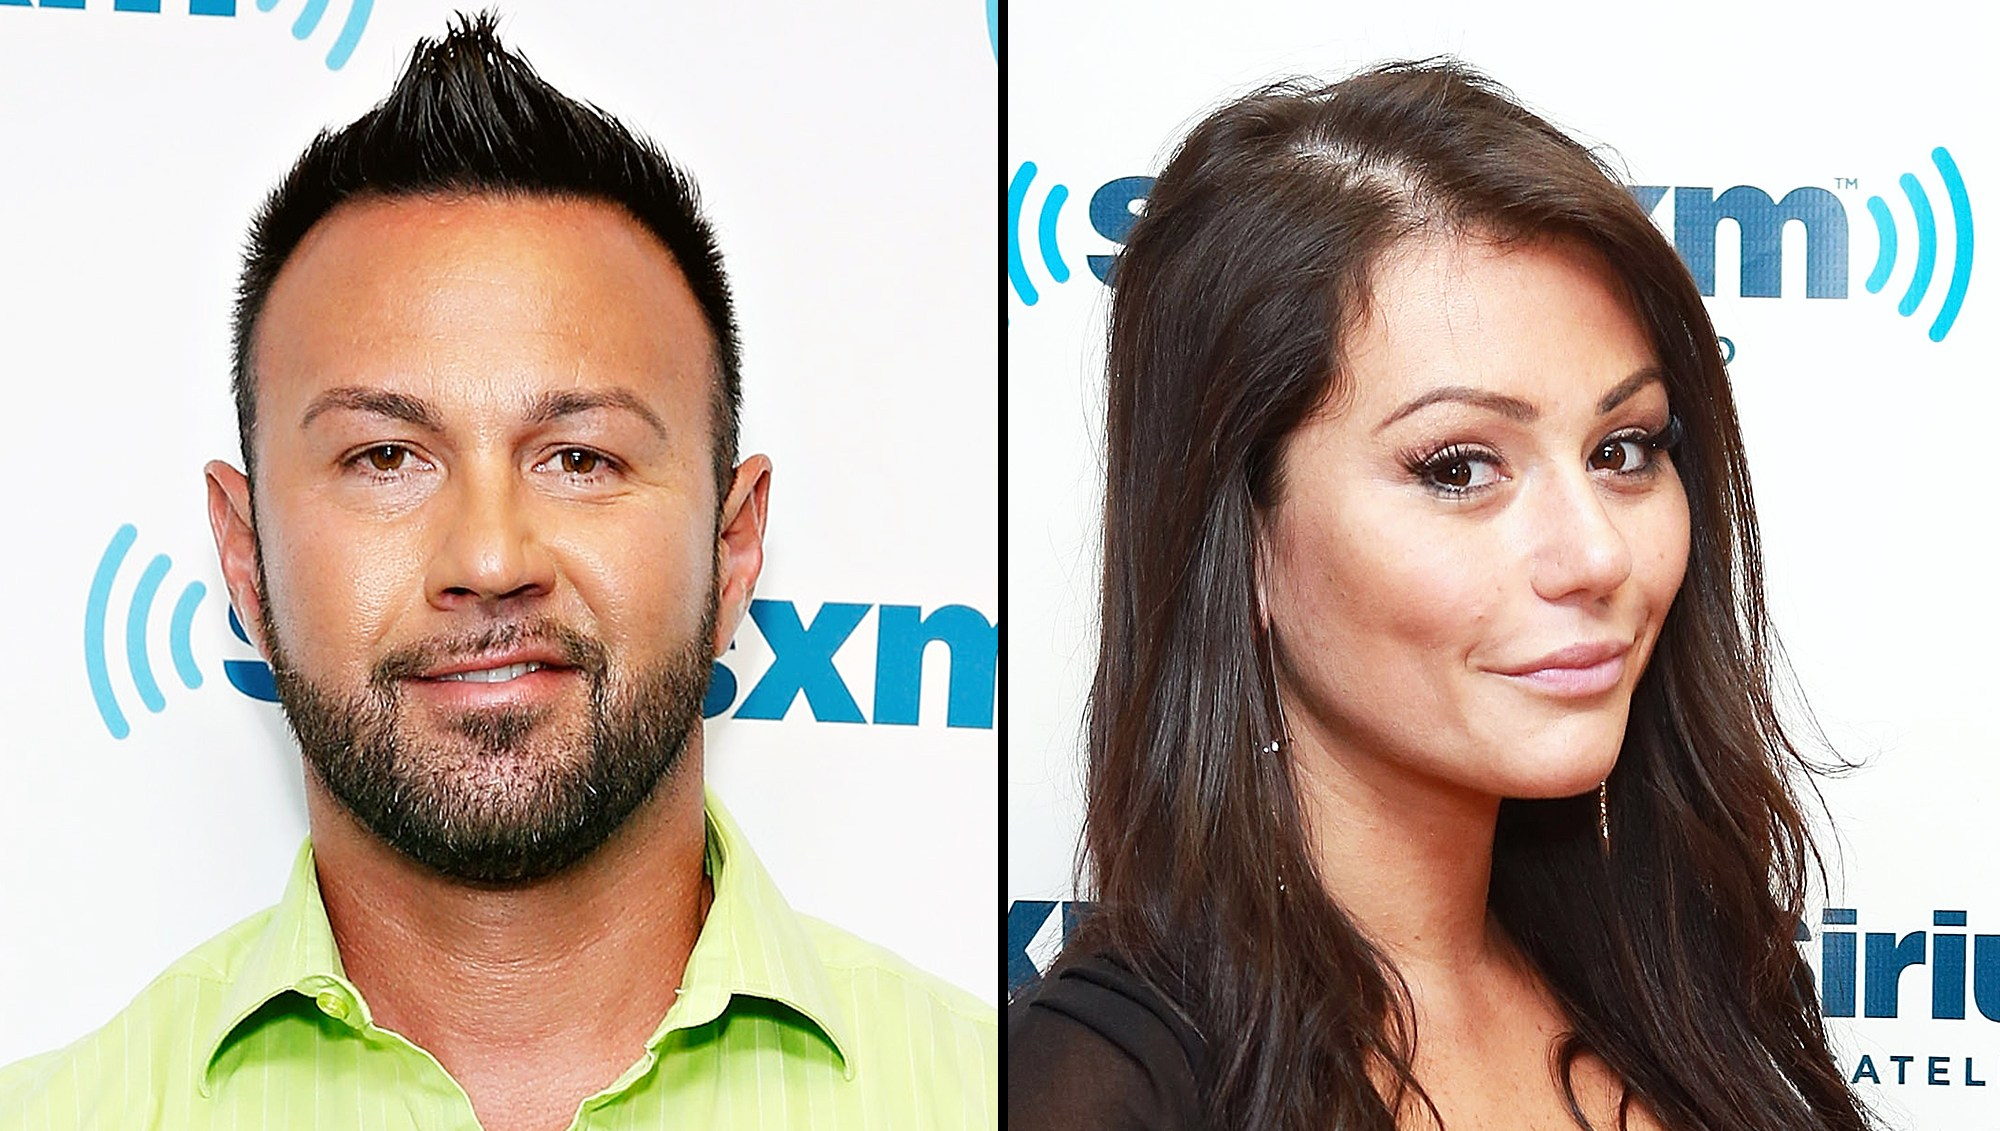 Roger Mathews Wants To Go On Jersey Shore Amid JWoww Drama